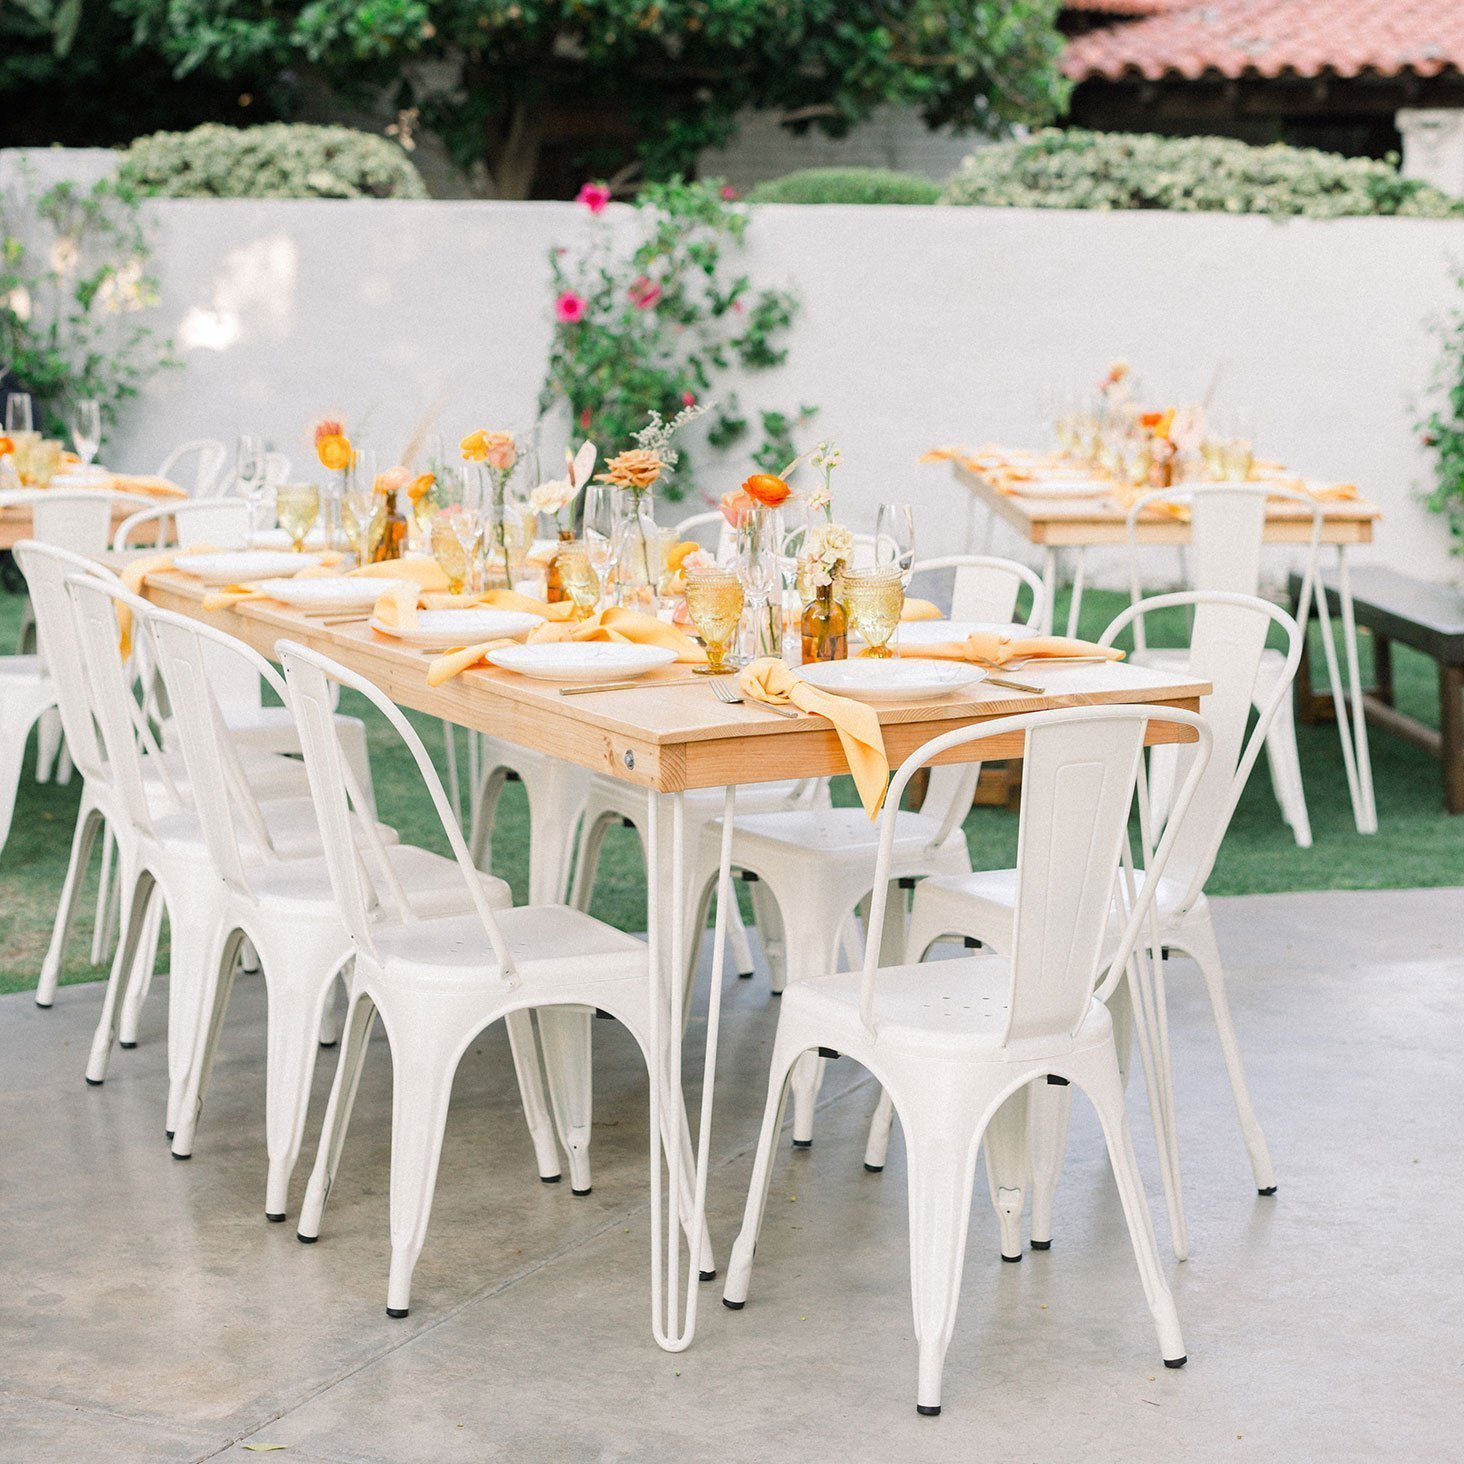 light-wood-sweetheart-farm-table-rental-san-diego